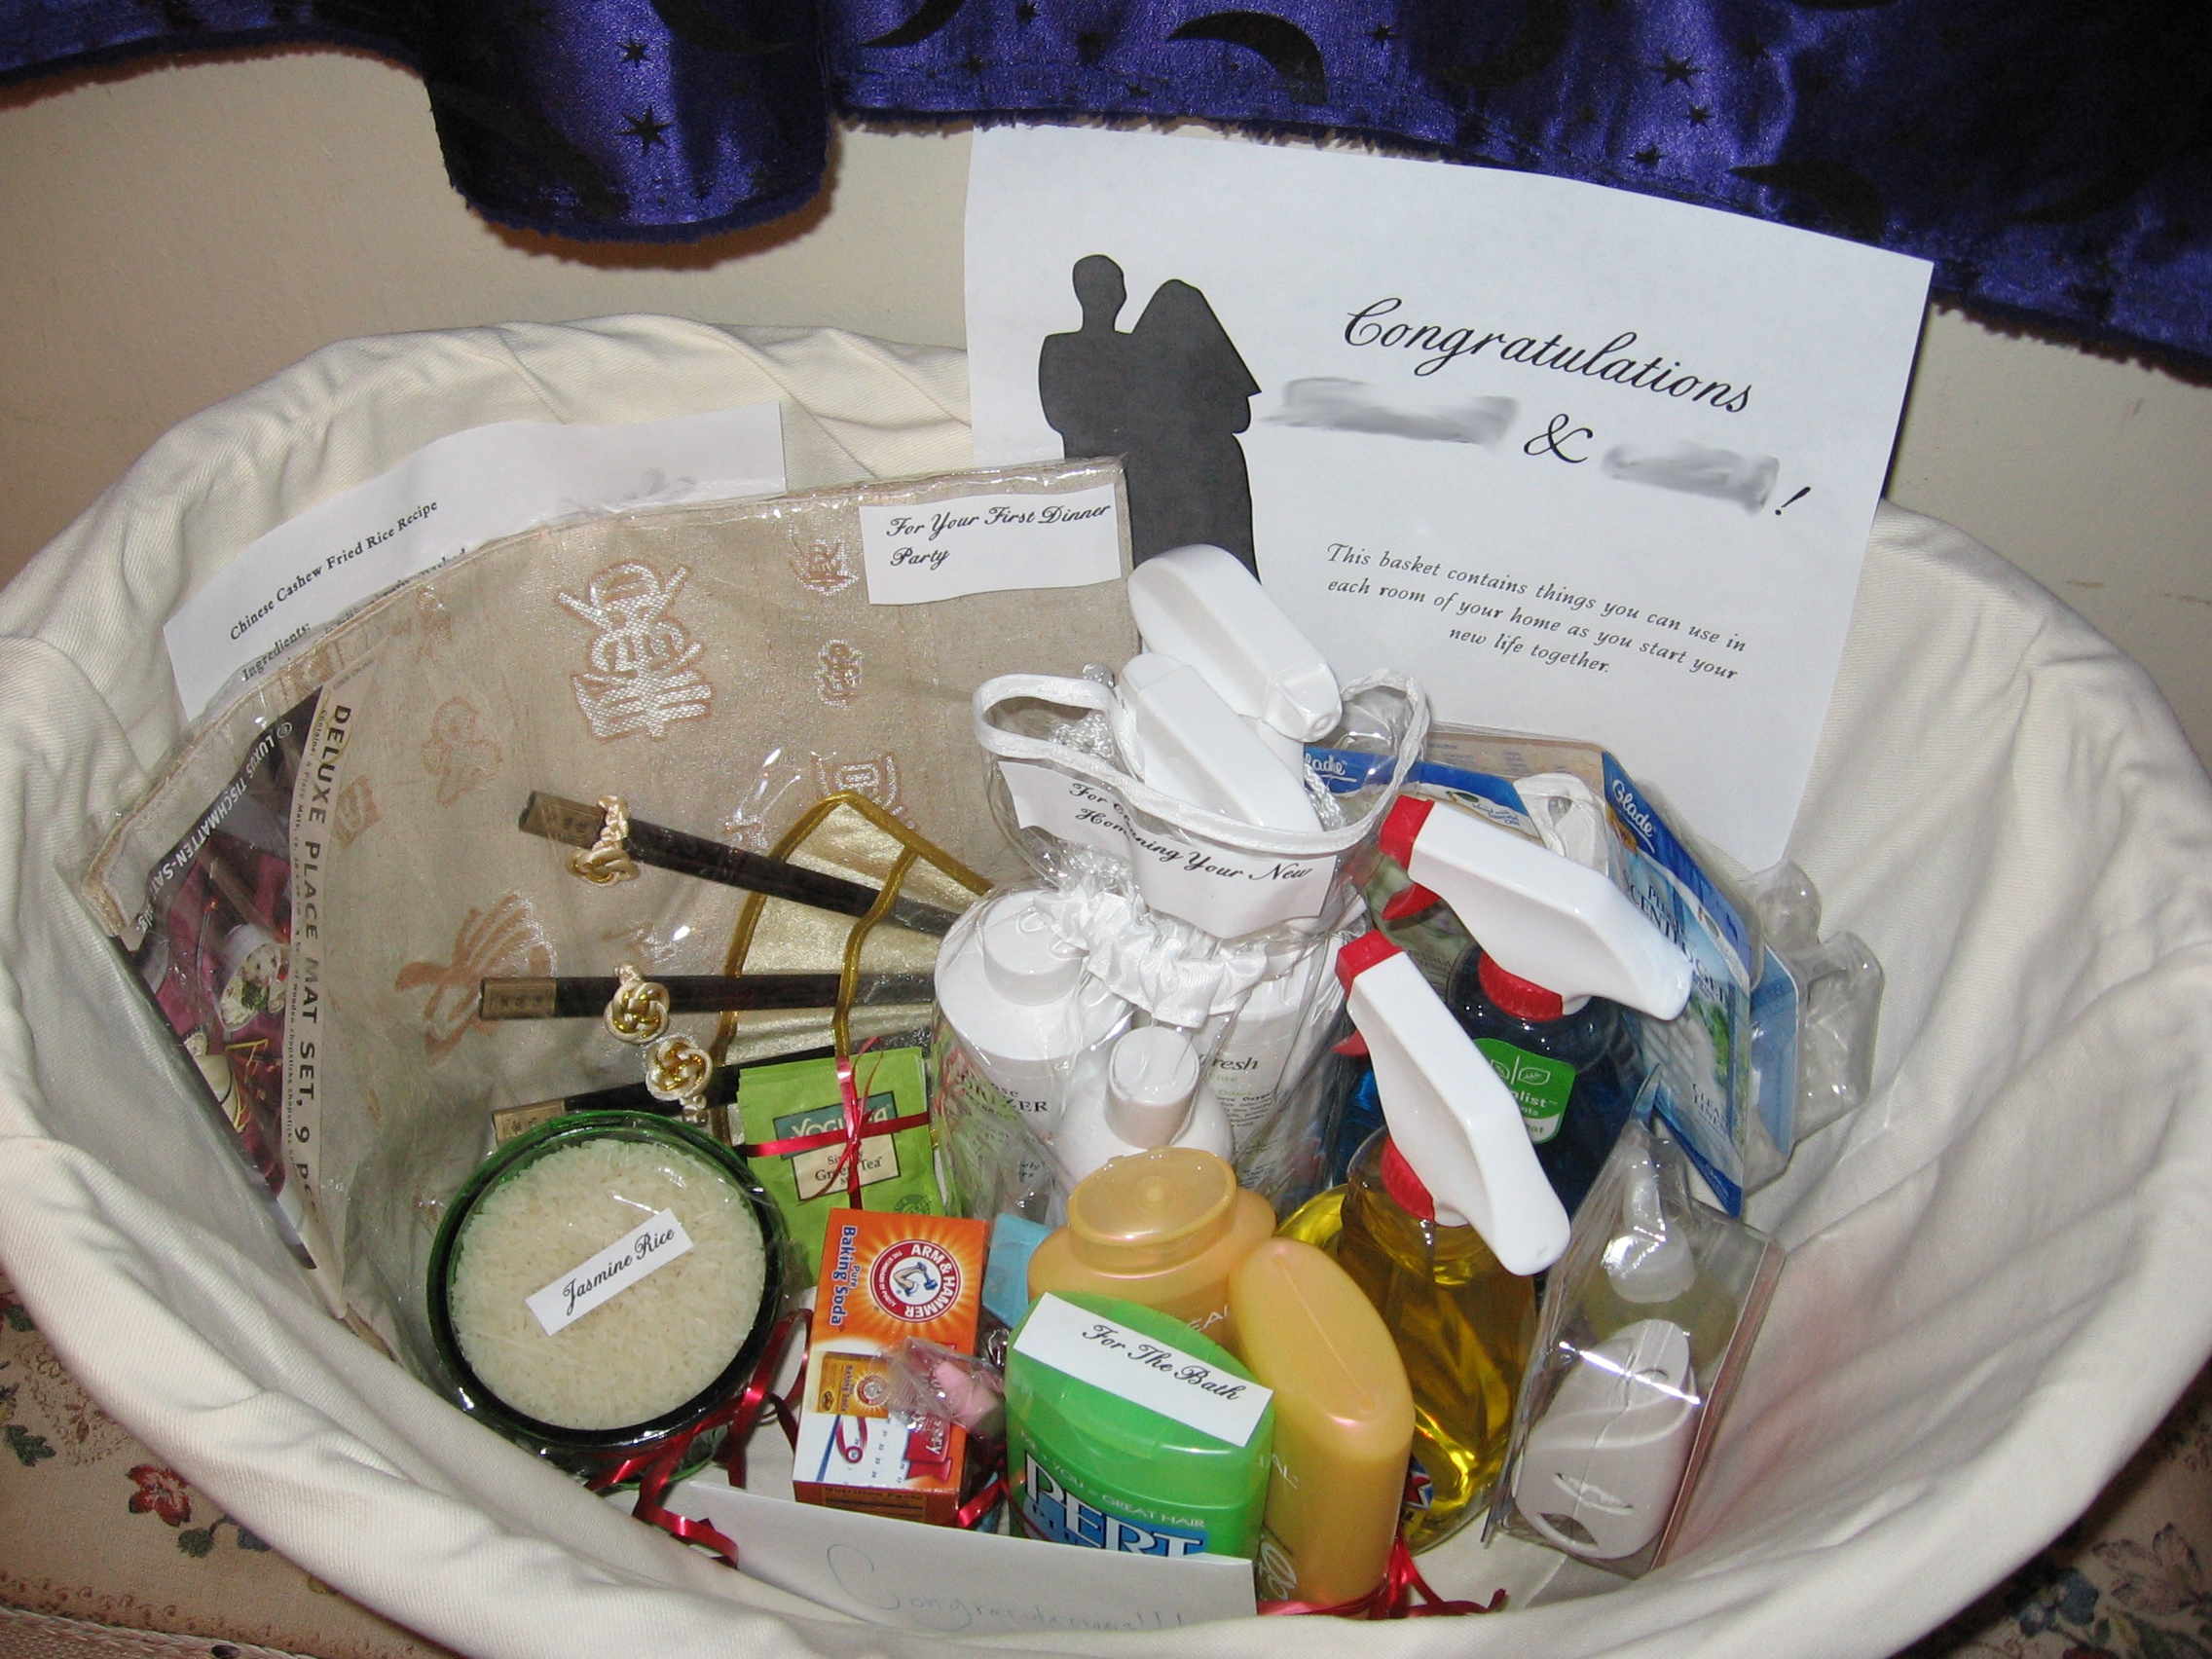 Wedding Themed Gift Basket : The happy couples names are blurred out for privacy! ??